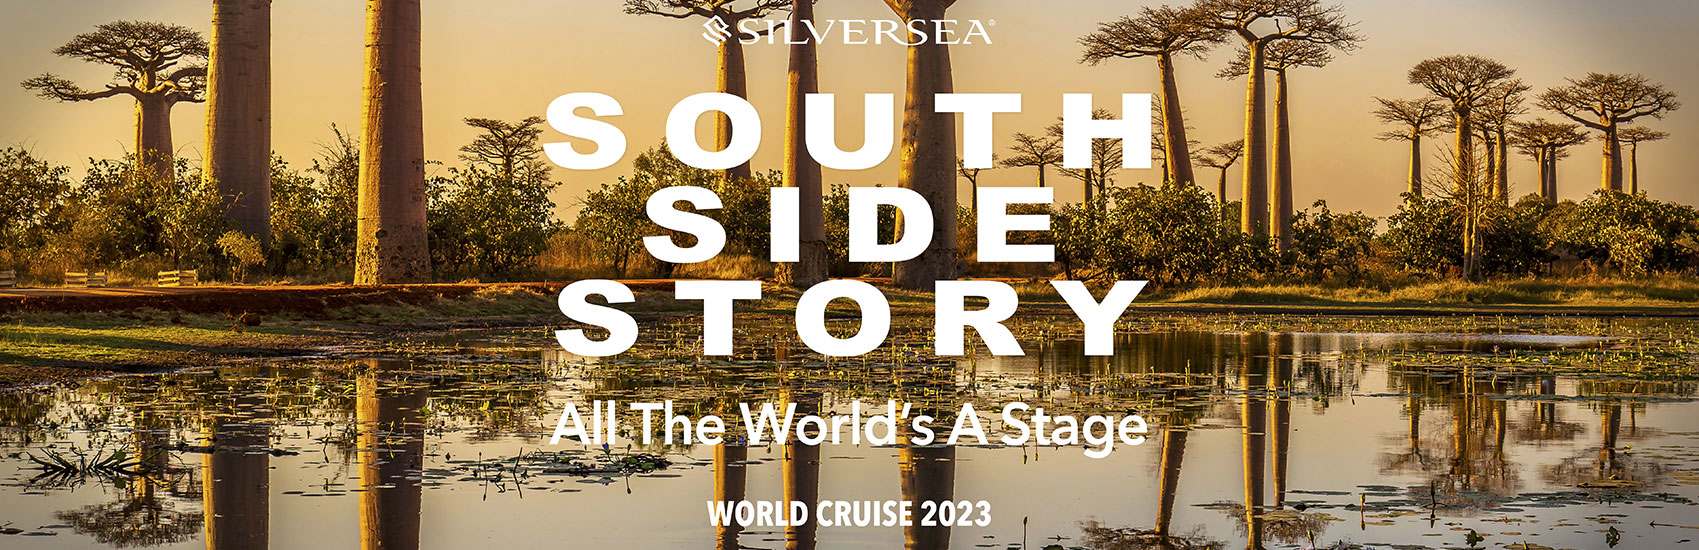 Silversea 2023 World Cruise 0